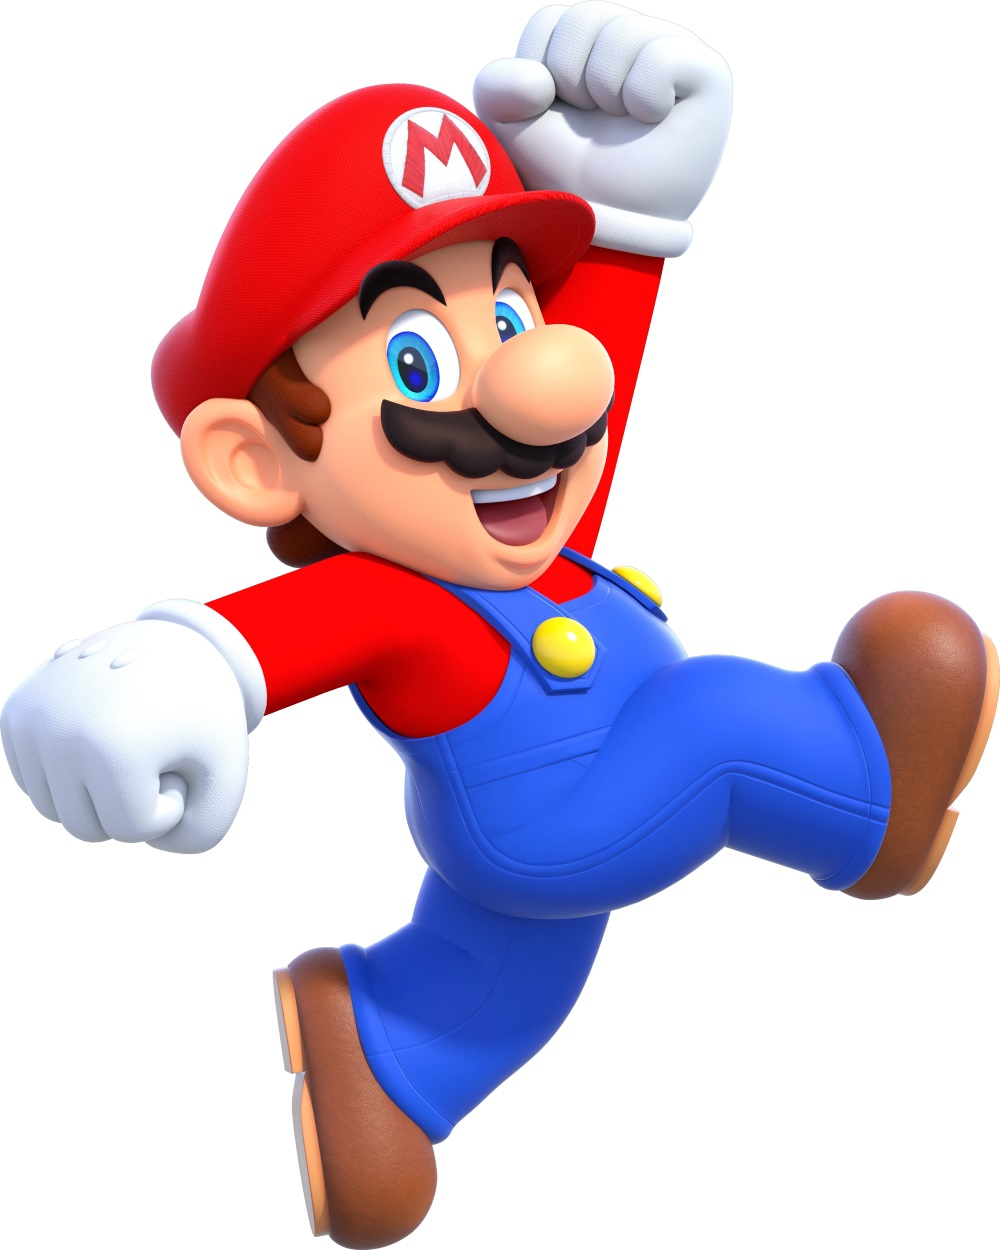 https://upload.wikimedia.org/wikipedia/ru/1/15/Mario2small.jpg